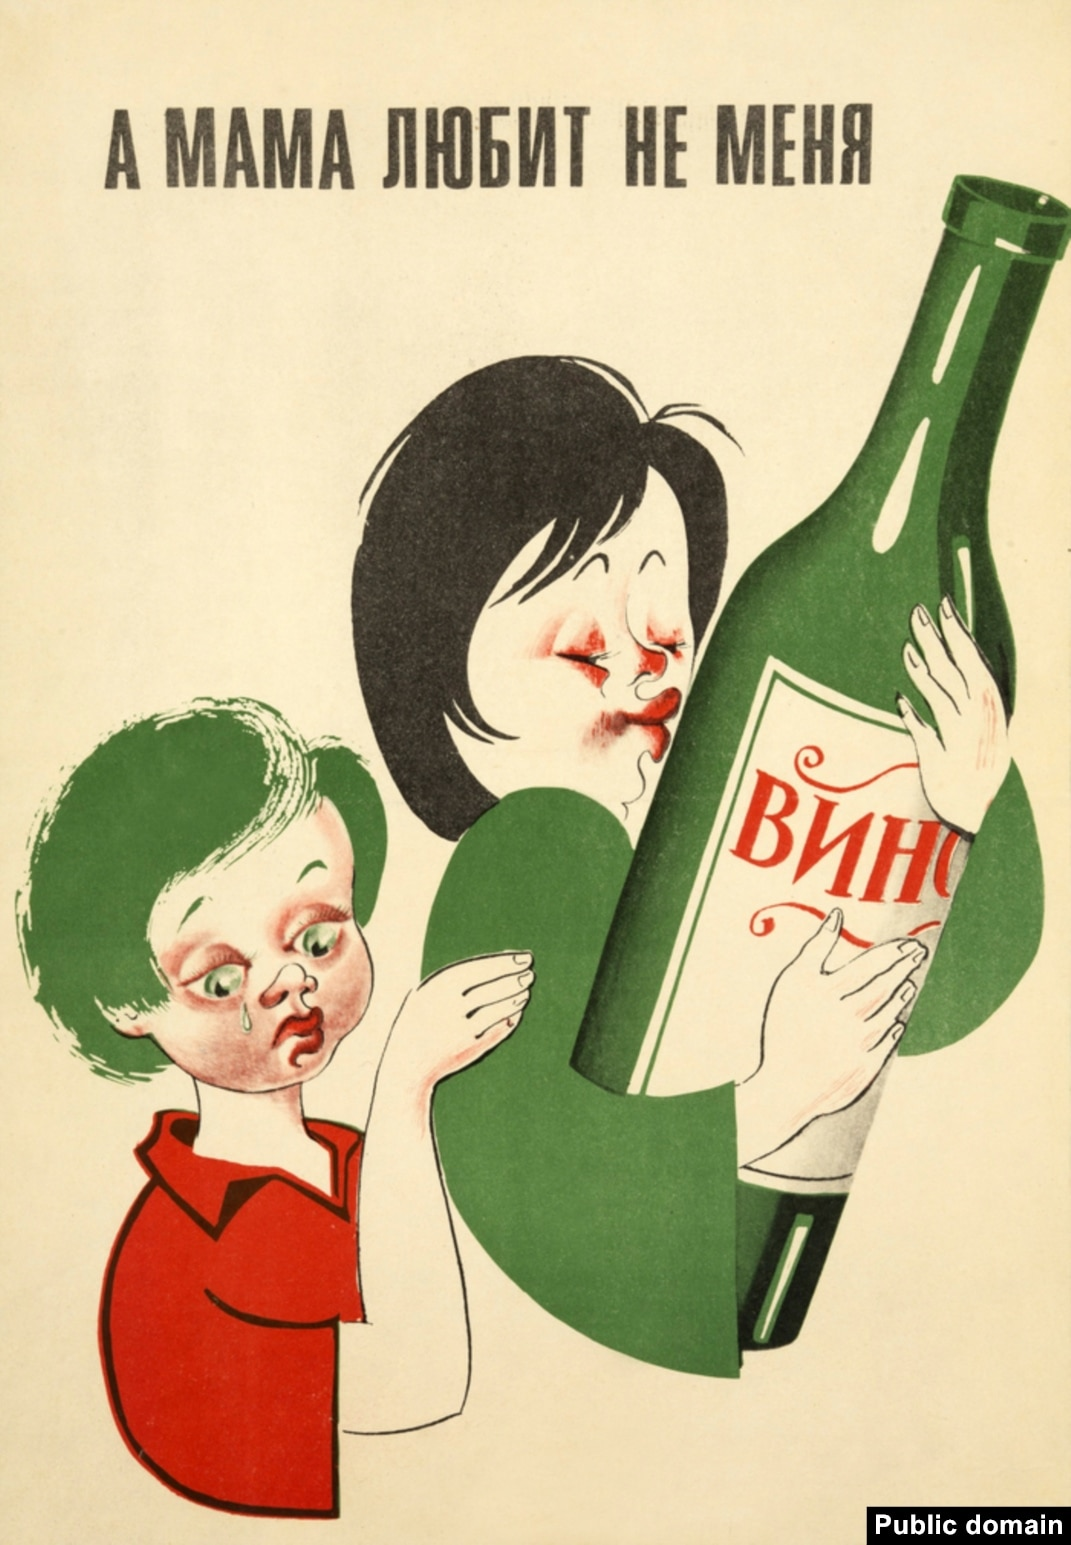 Not A Drop!' Seven Decades Of Soviet Anti-Alcohol Posters